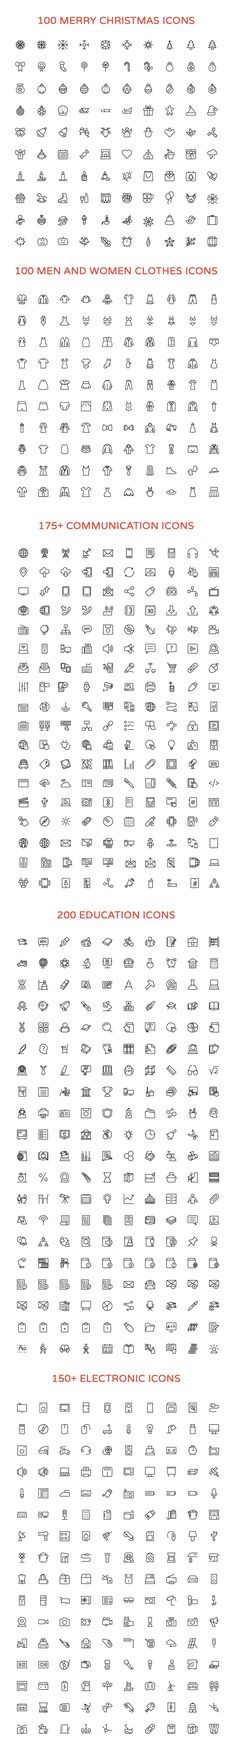 2800+ Line Vector Icons Bundle by Creative Stall on @creativemarket